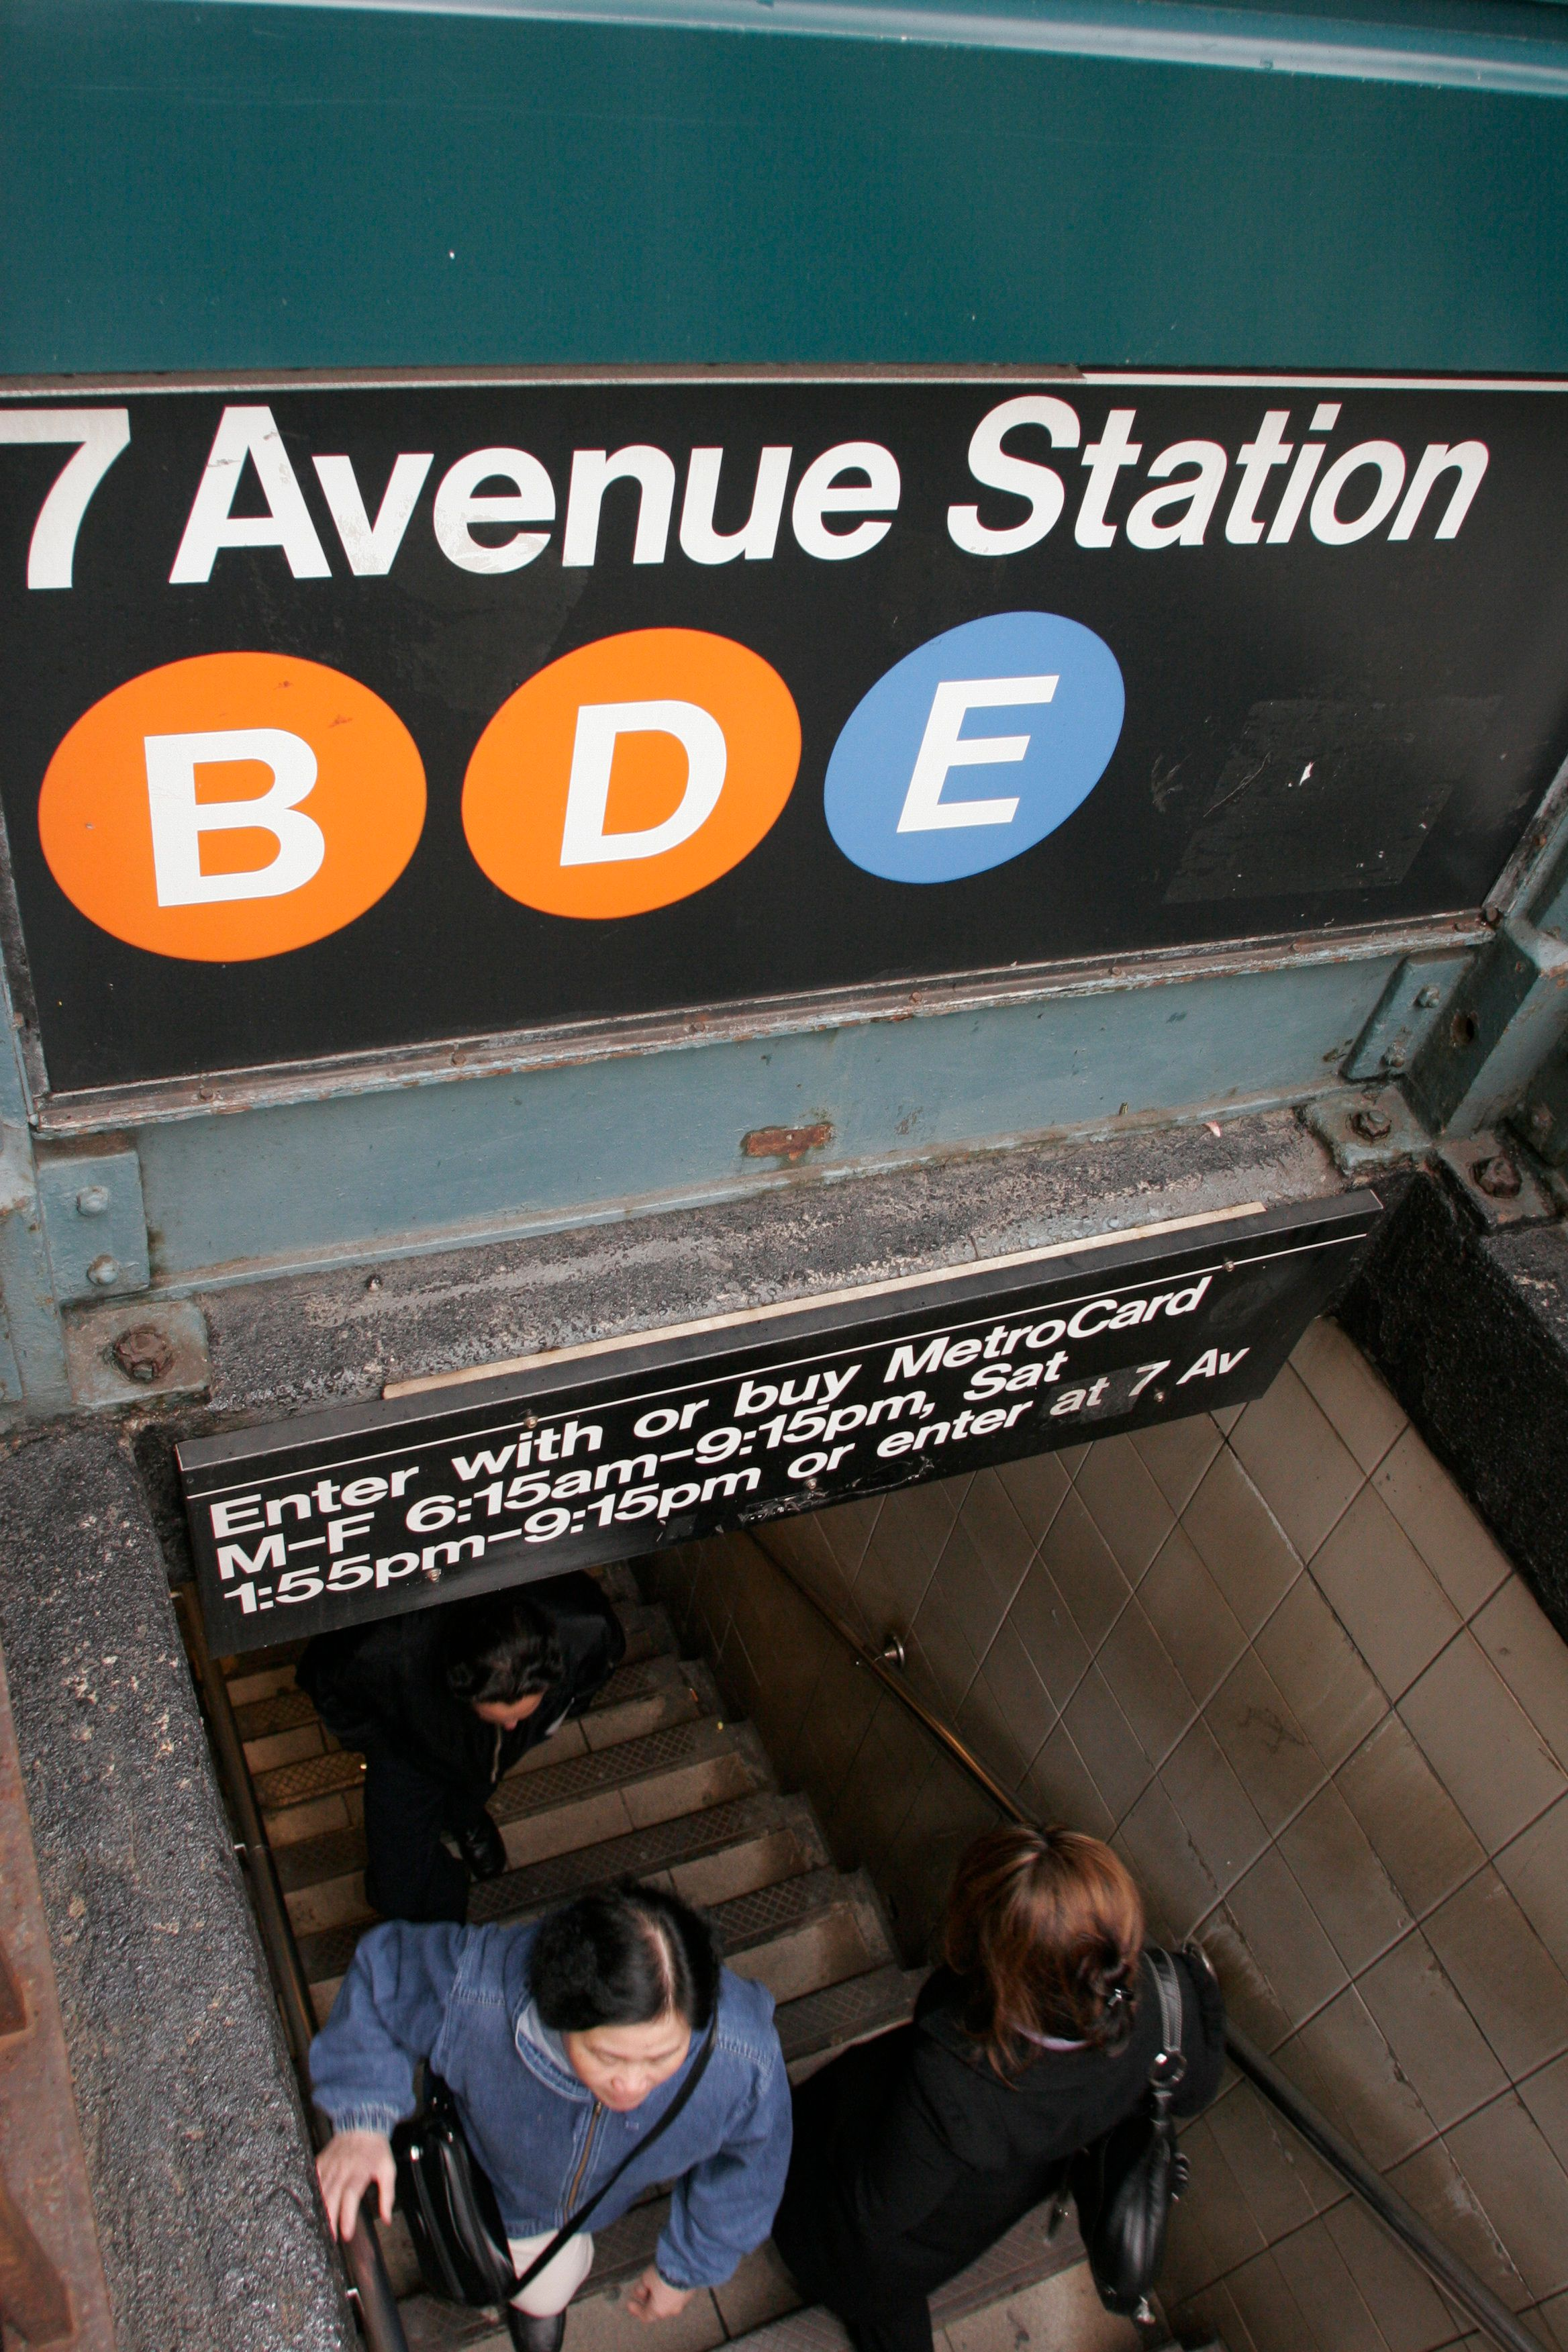 The subway station entrance sign on 50th Street. (Photo by: Jeffrey Greenberg/UIG via Getty Images)